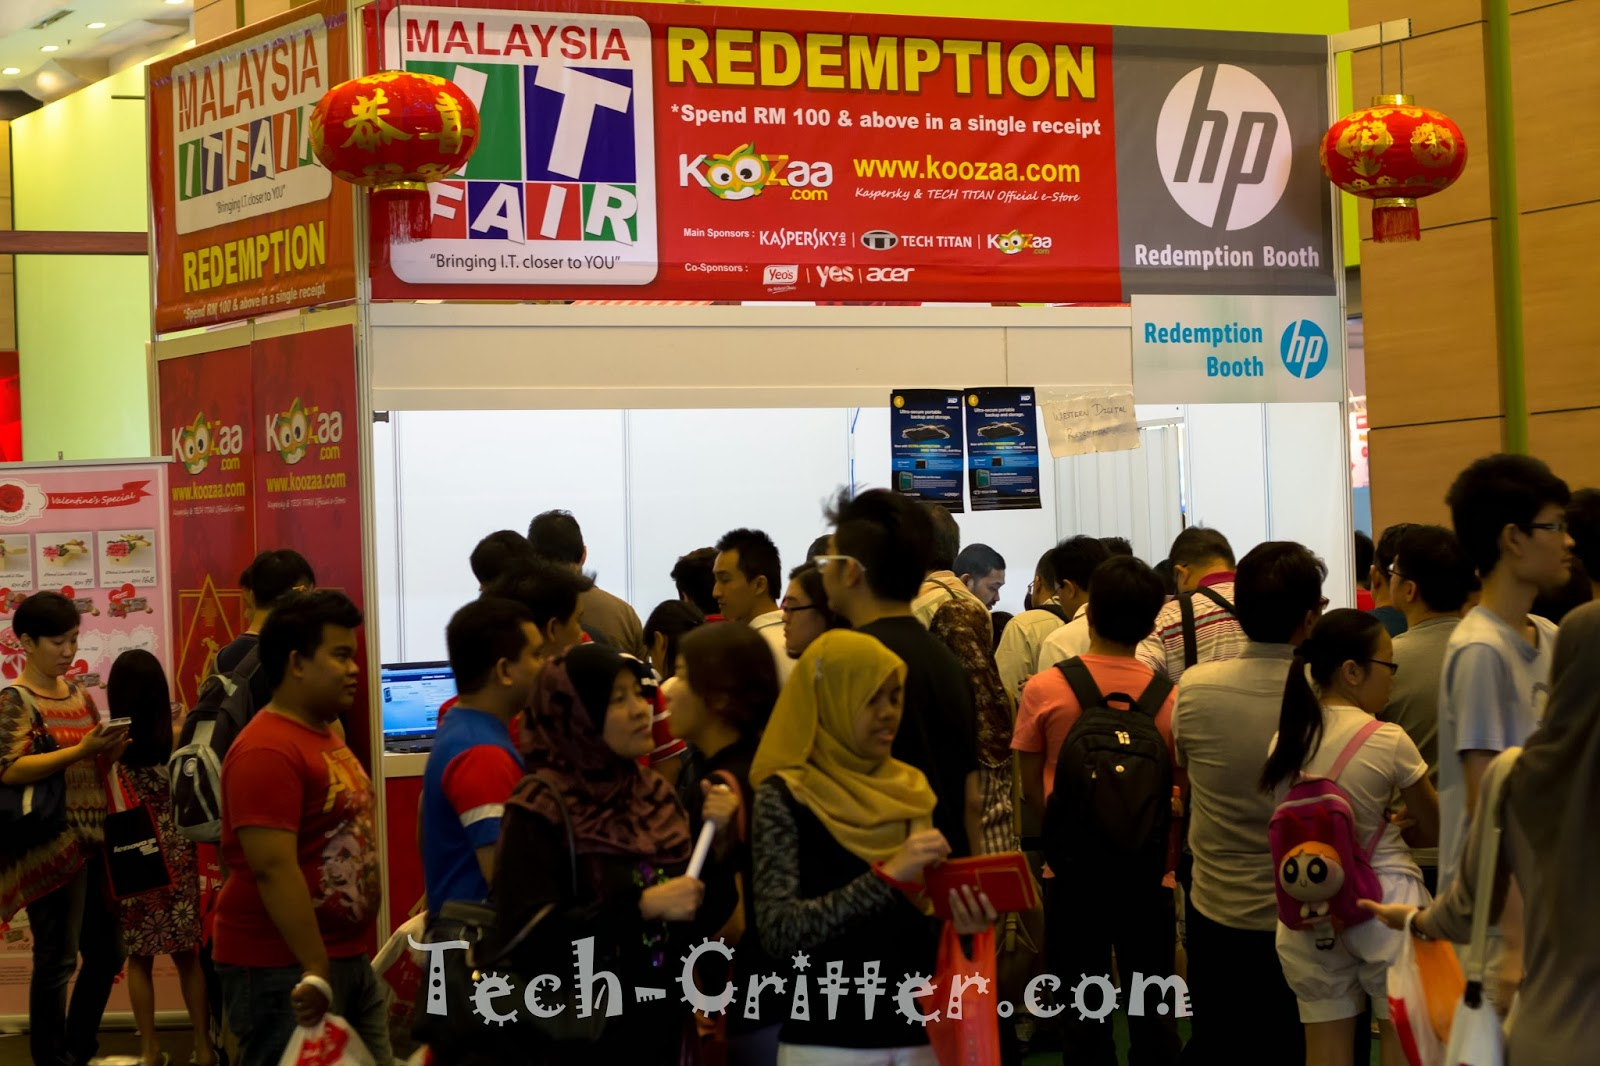 Coverage of the Malaysia IT Fair @ Mid Valley (17 - 19 Jan 2014) 230